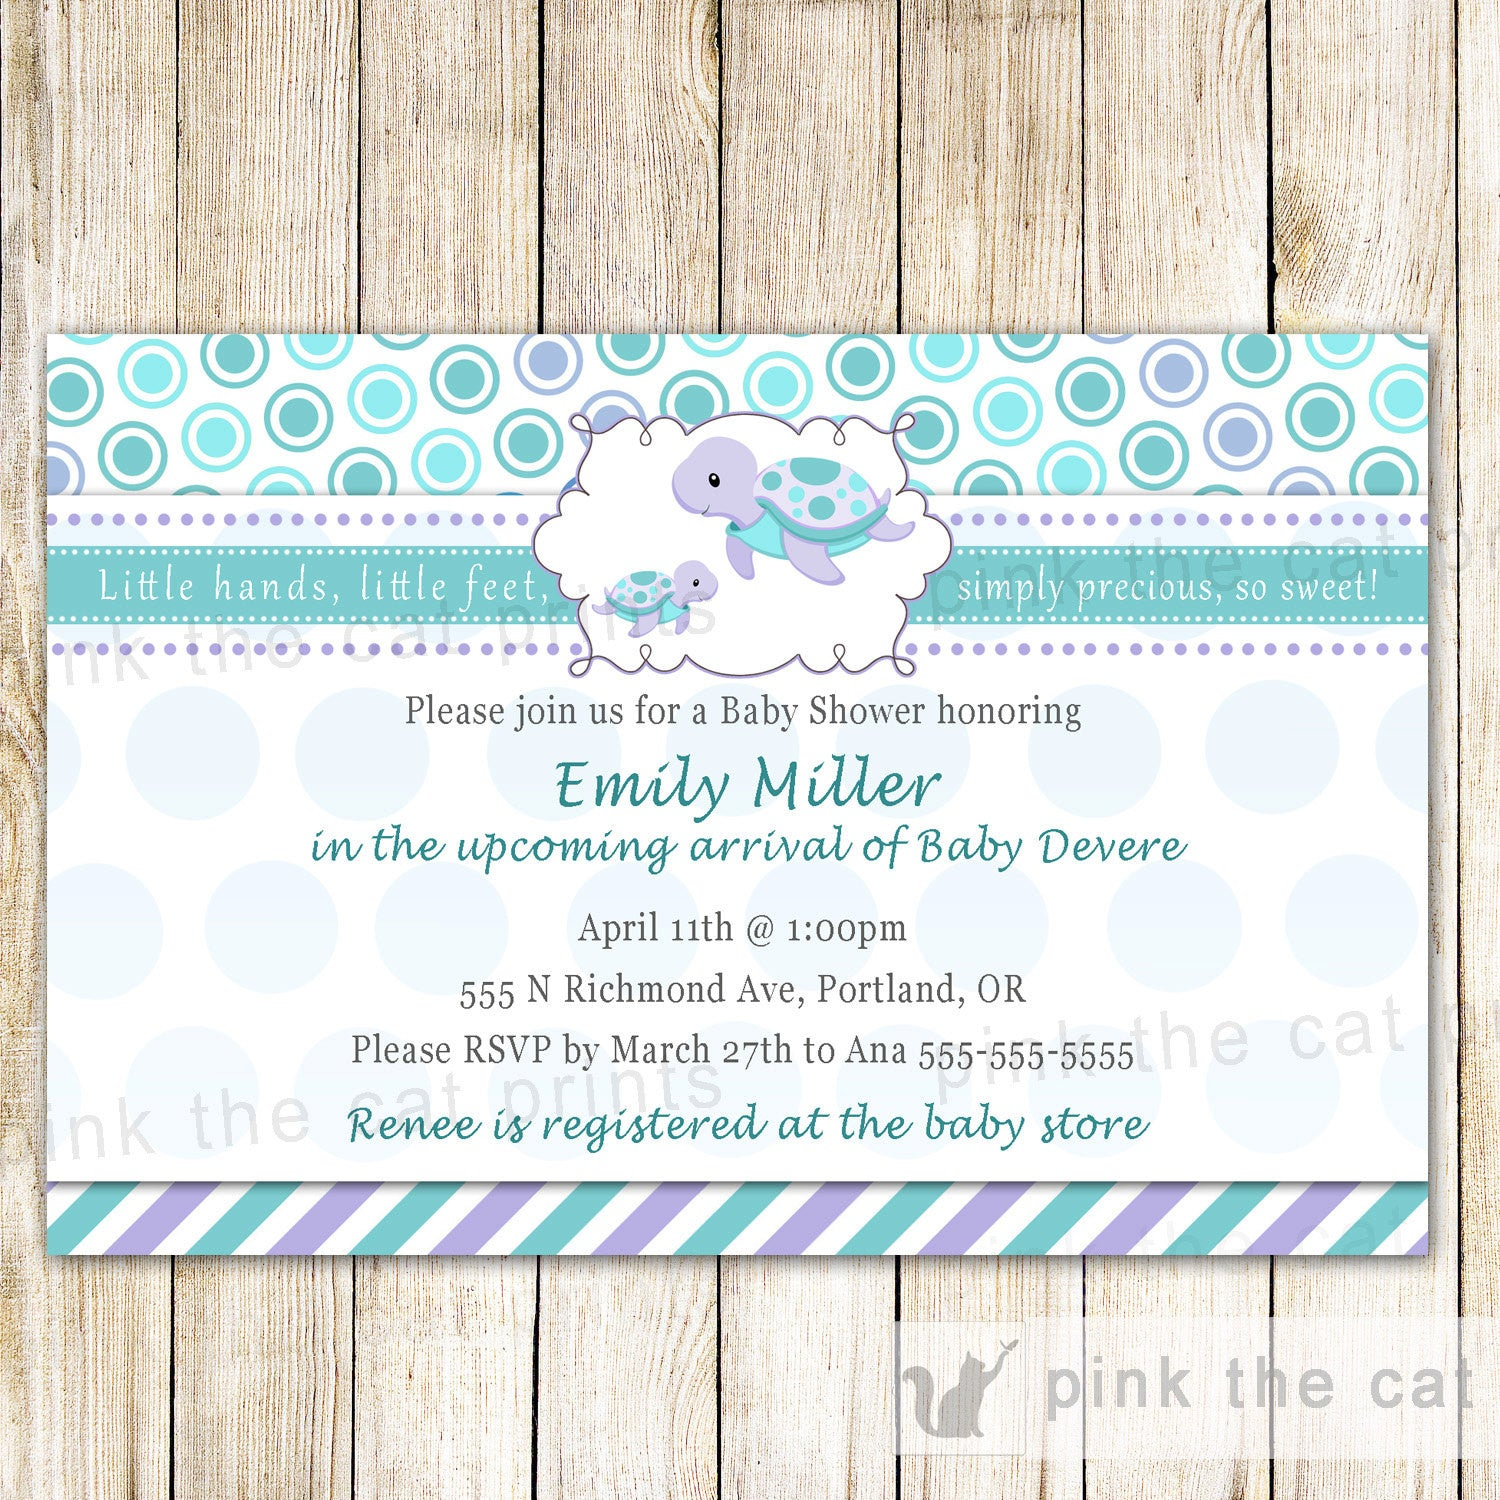 Turtle baby girl shower invitation teal purple pink the cat baby shower invitation filmwisefo